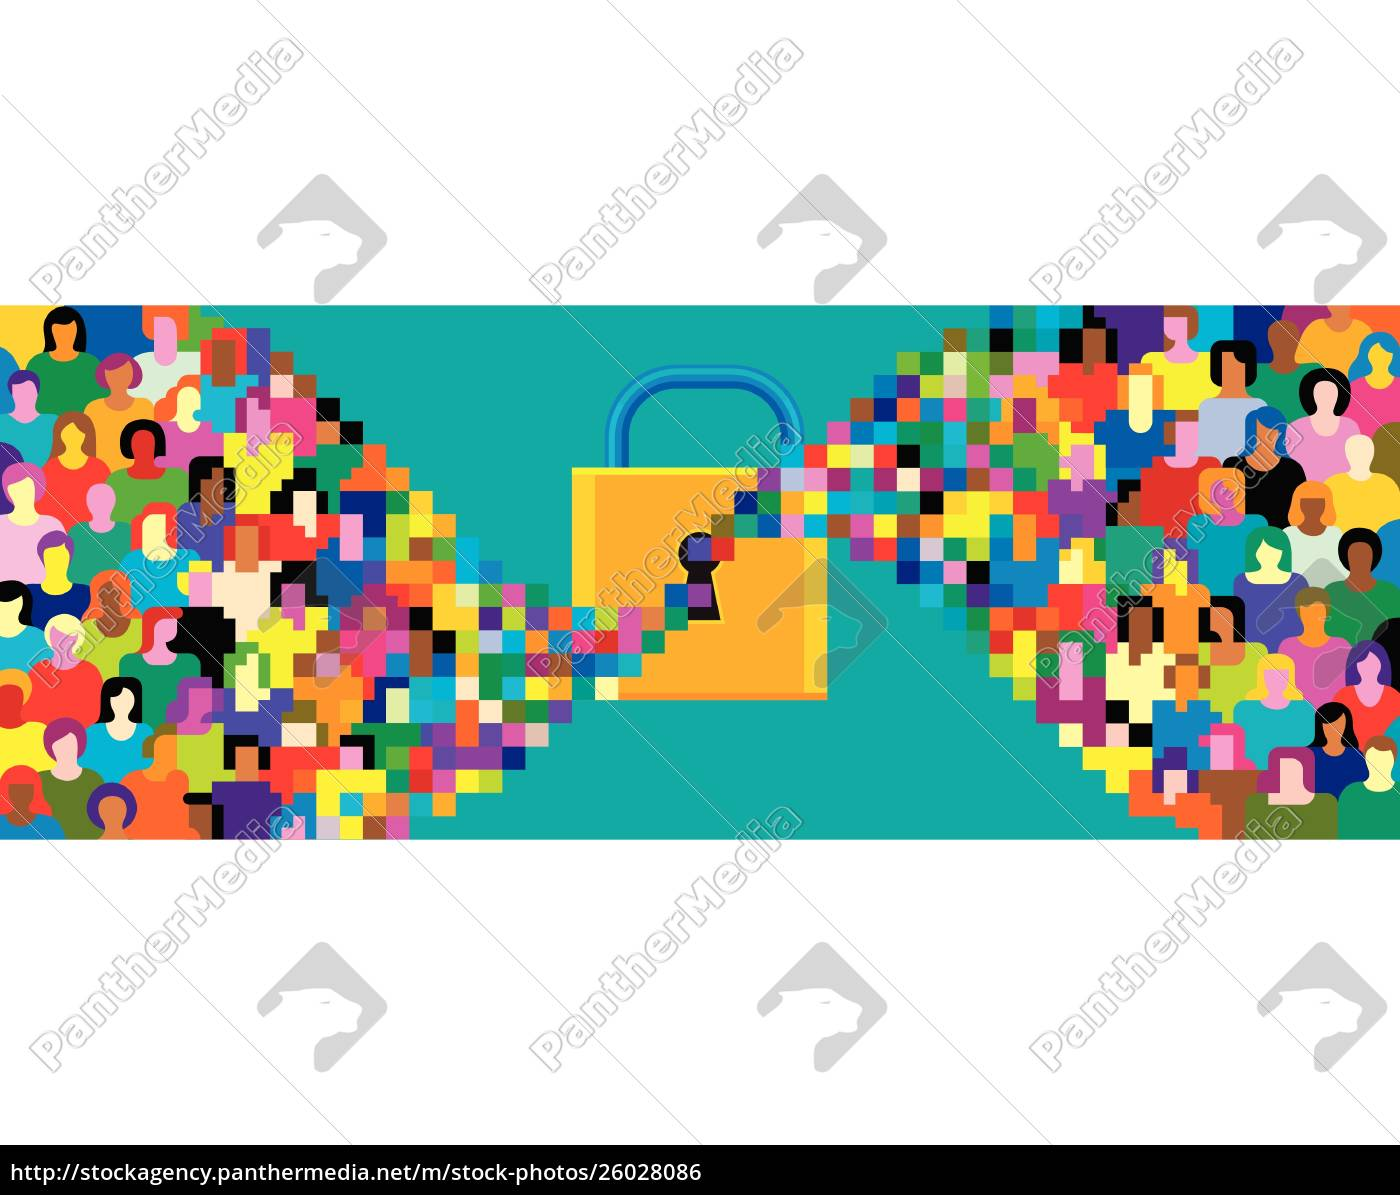 pixelated, crowd, streaming, into, padlock - 26028086